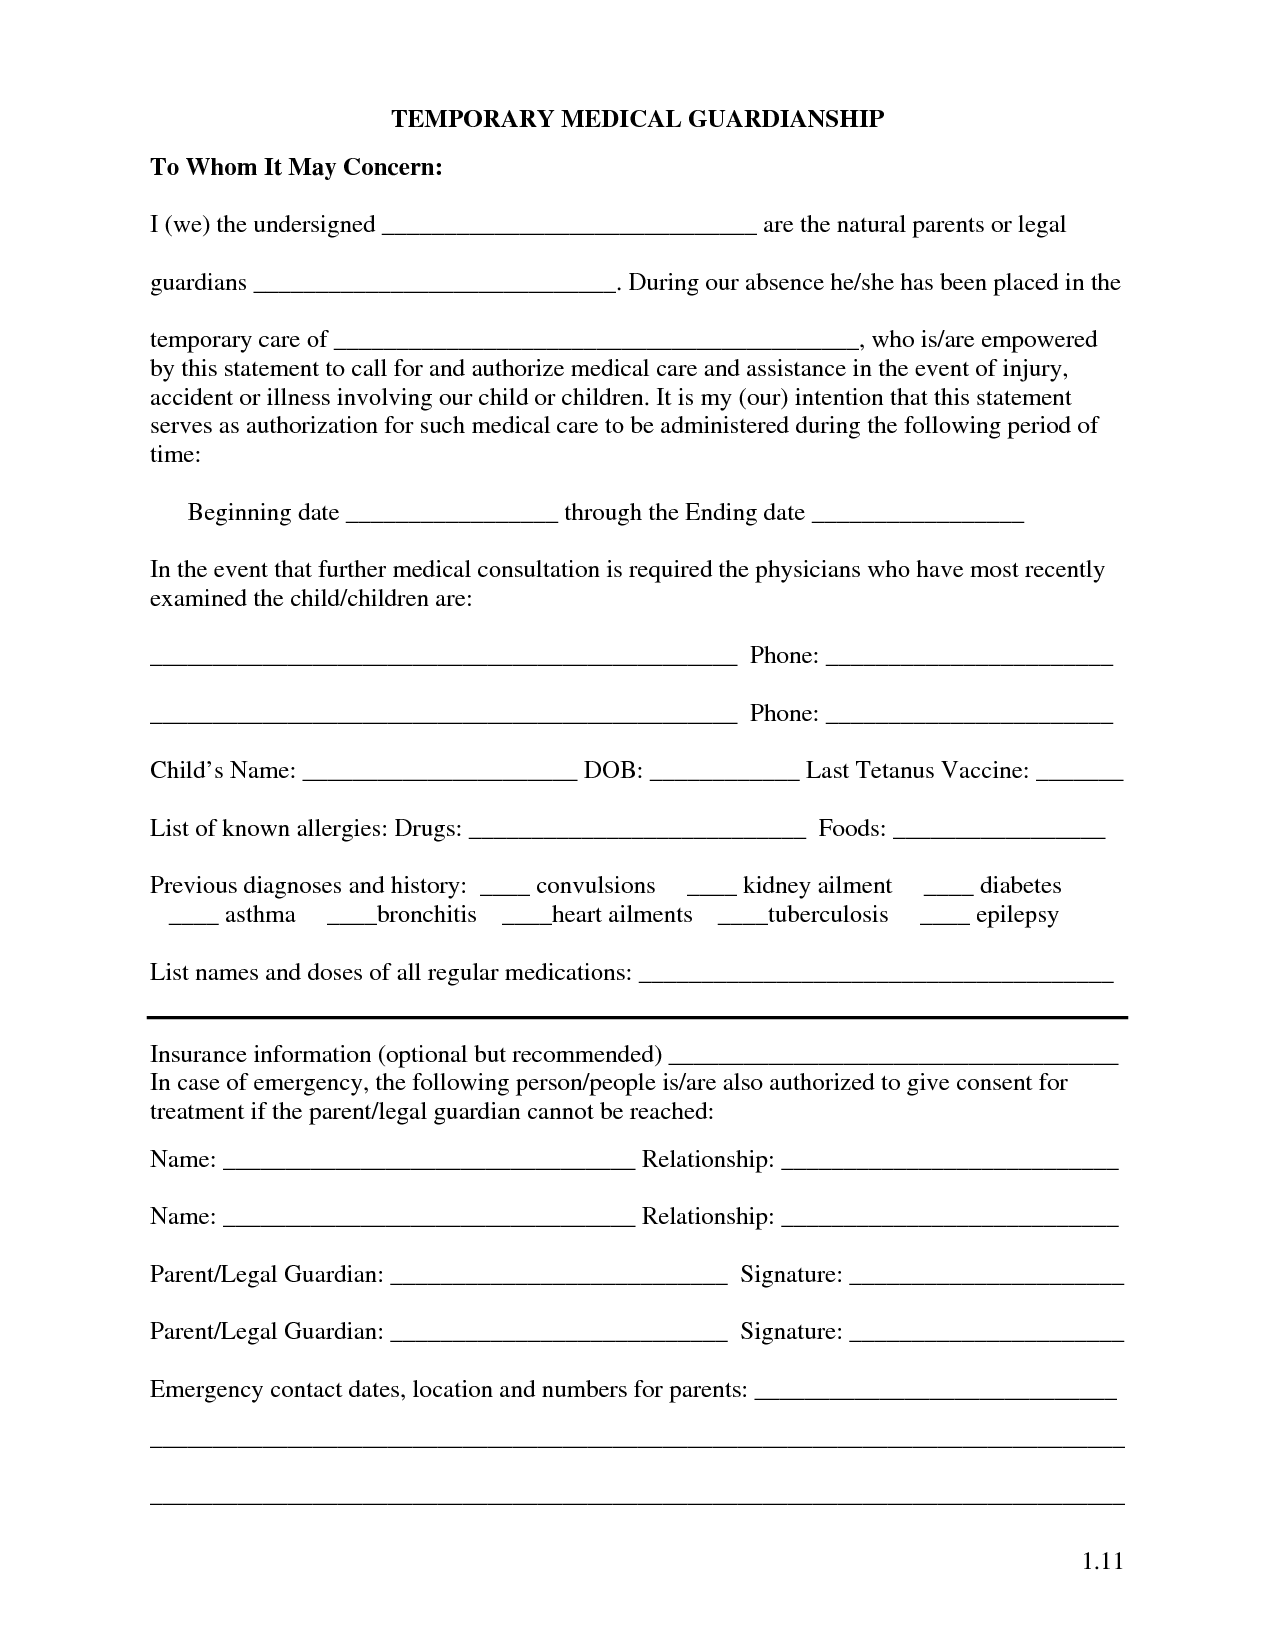 Free Printable Temporary Guardianship Forms With Images